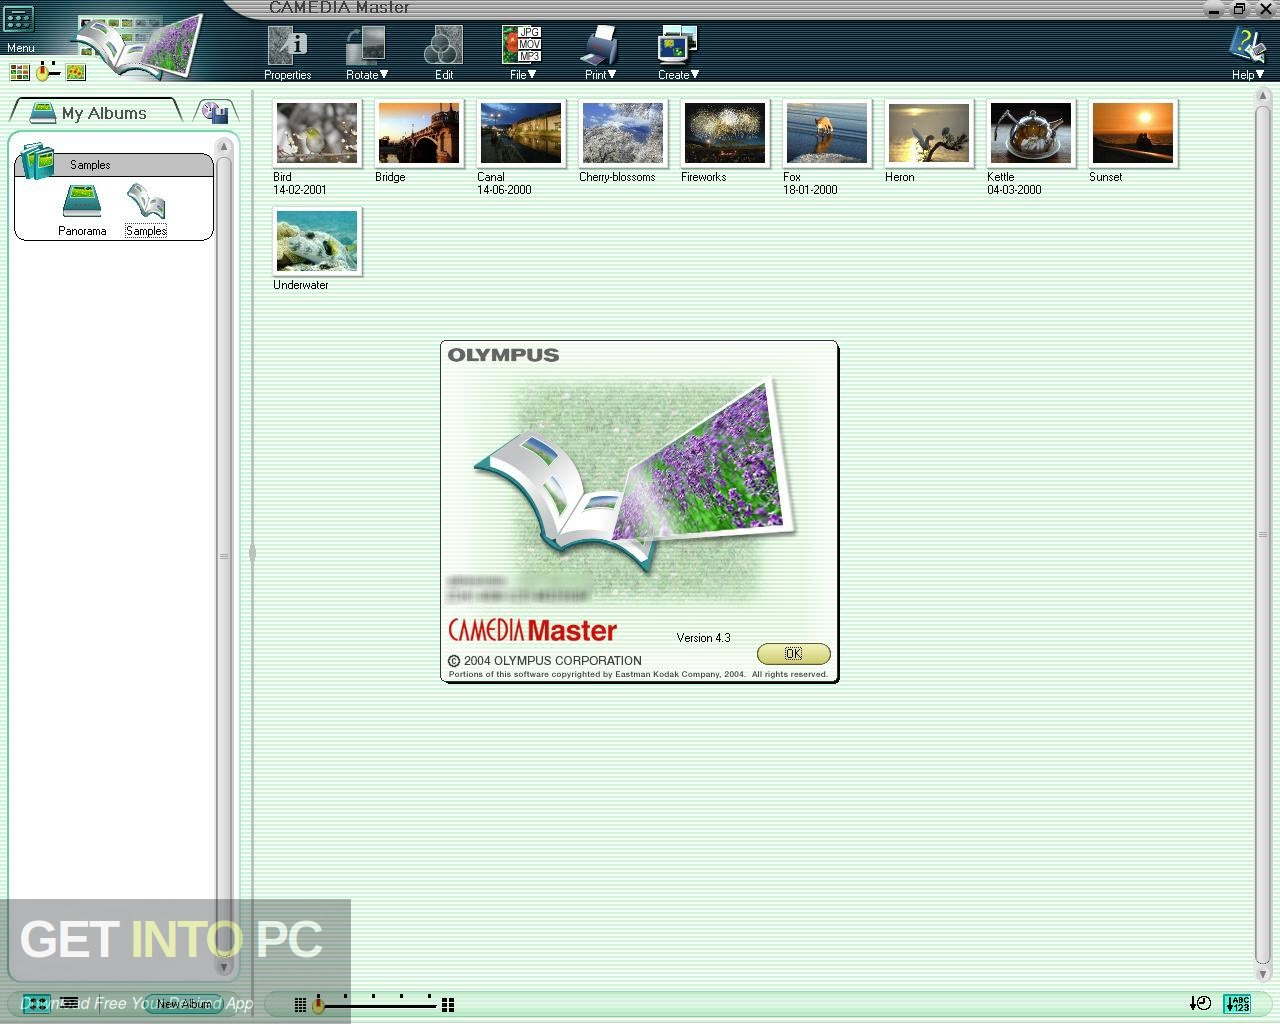 camedia master software for windows 7 download free